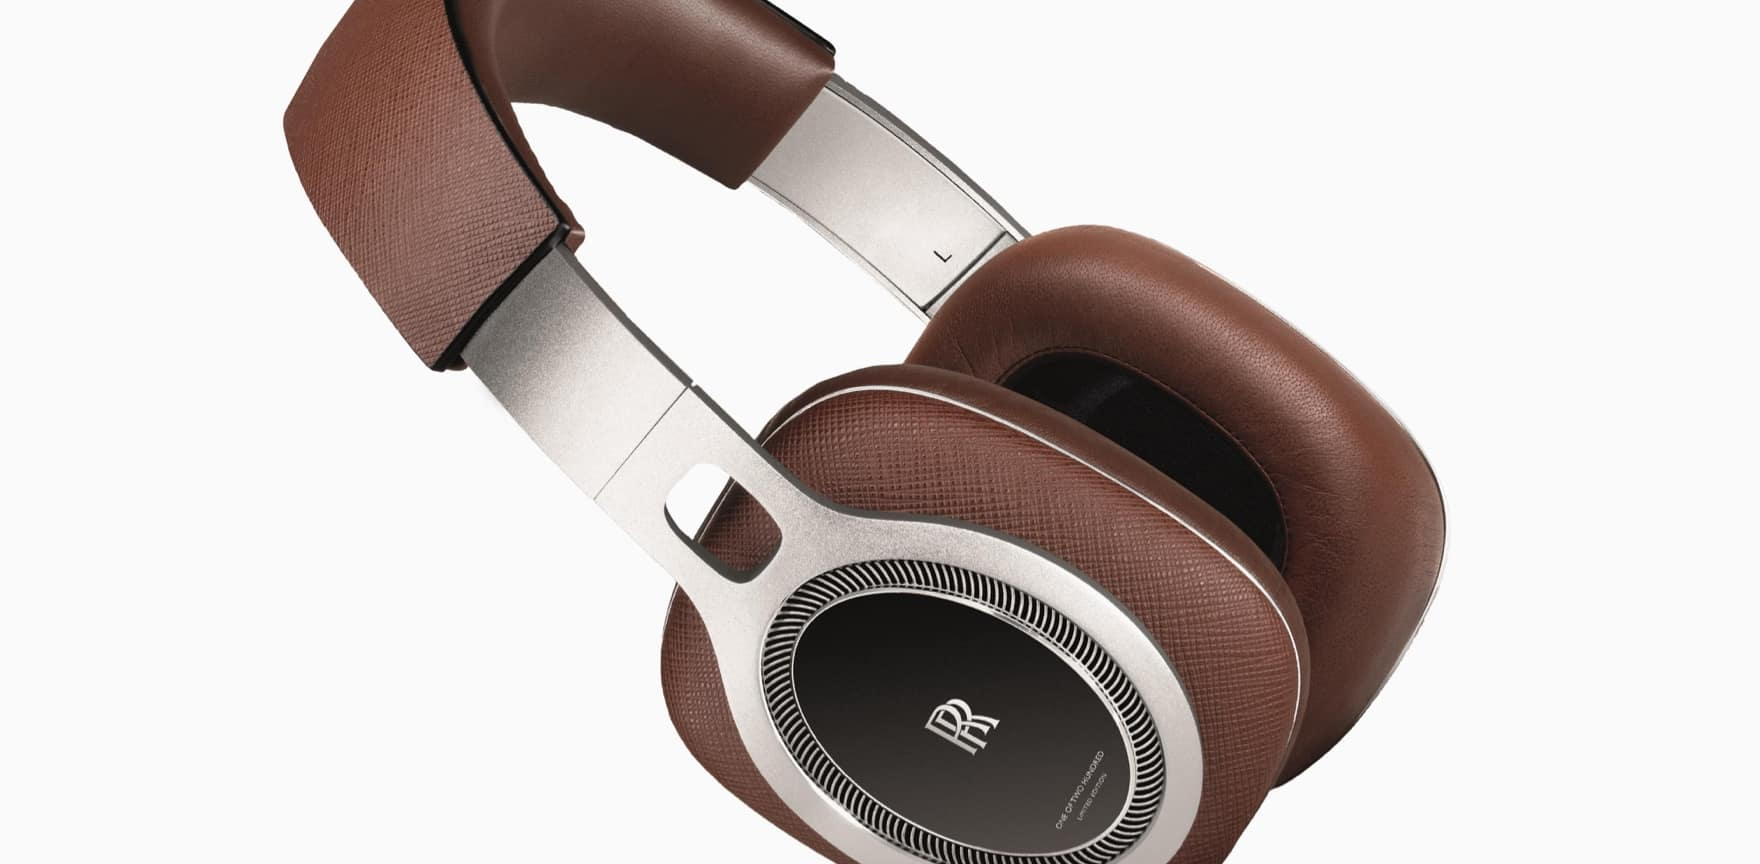 Limited edition Rolls-Royce headphones with monogram, constructed from aluminium and Saffiano brown leather for a lightweight feel